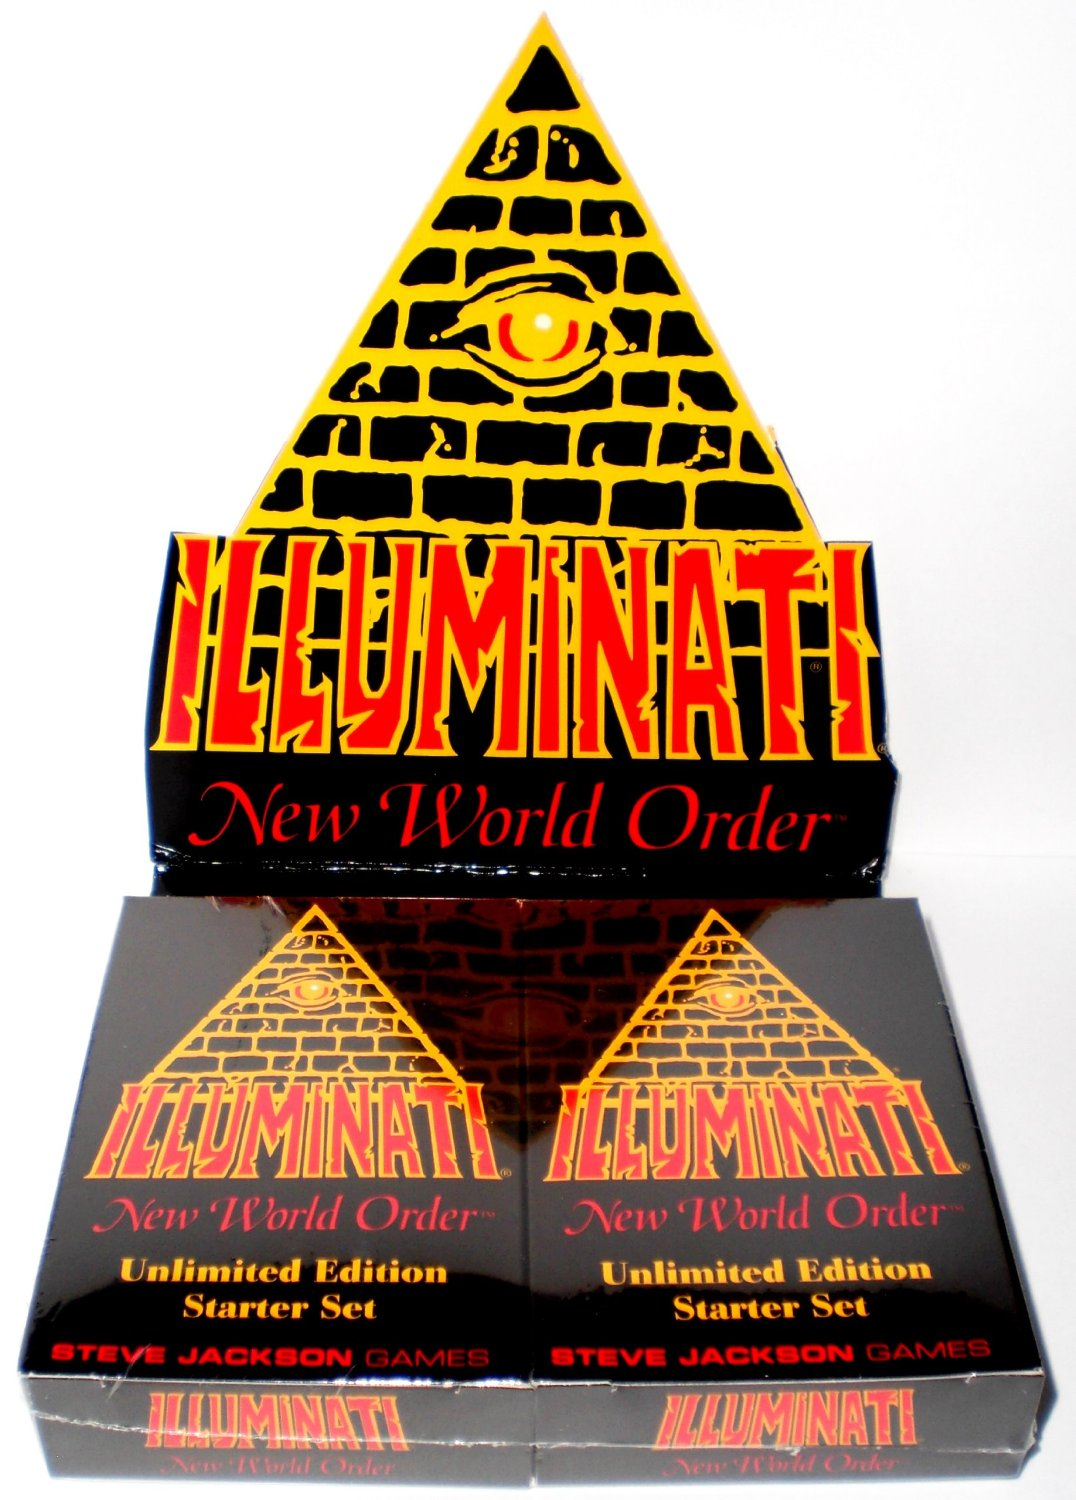 1995 - Illuminati New World Order collectible card game - (INWO Unlimited Edition Starter Set) Factory Sealed (CCG) Two Double Decks 55 cards each INWO rulebook (110 Cards total) By Steve Jackson (Unlimited Edition Original Version 1.1 March 1995)